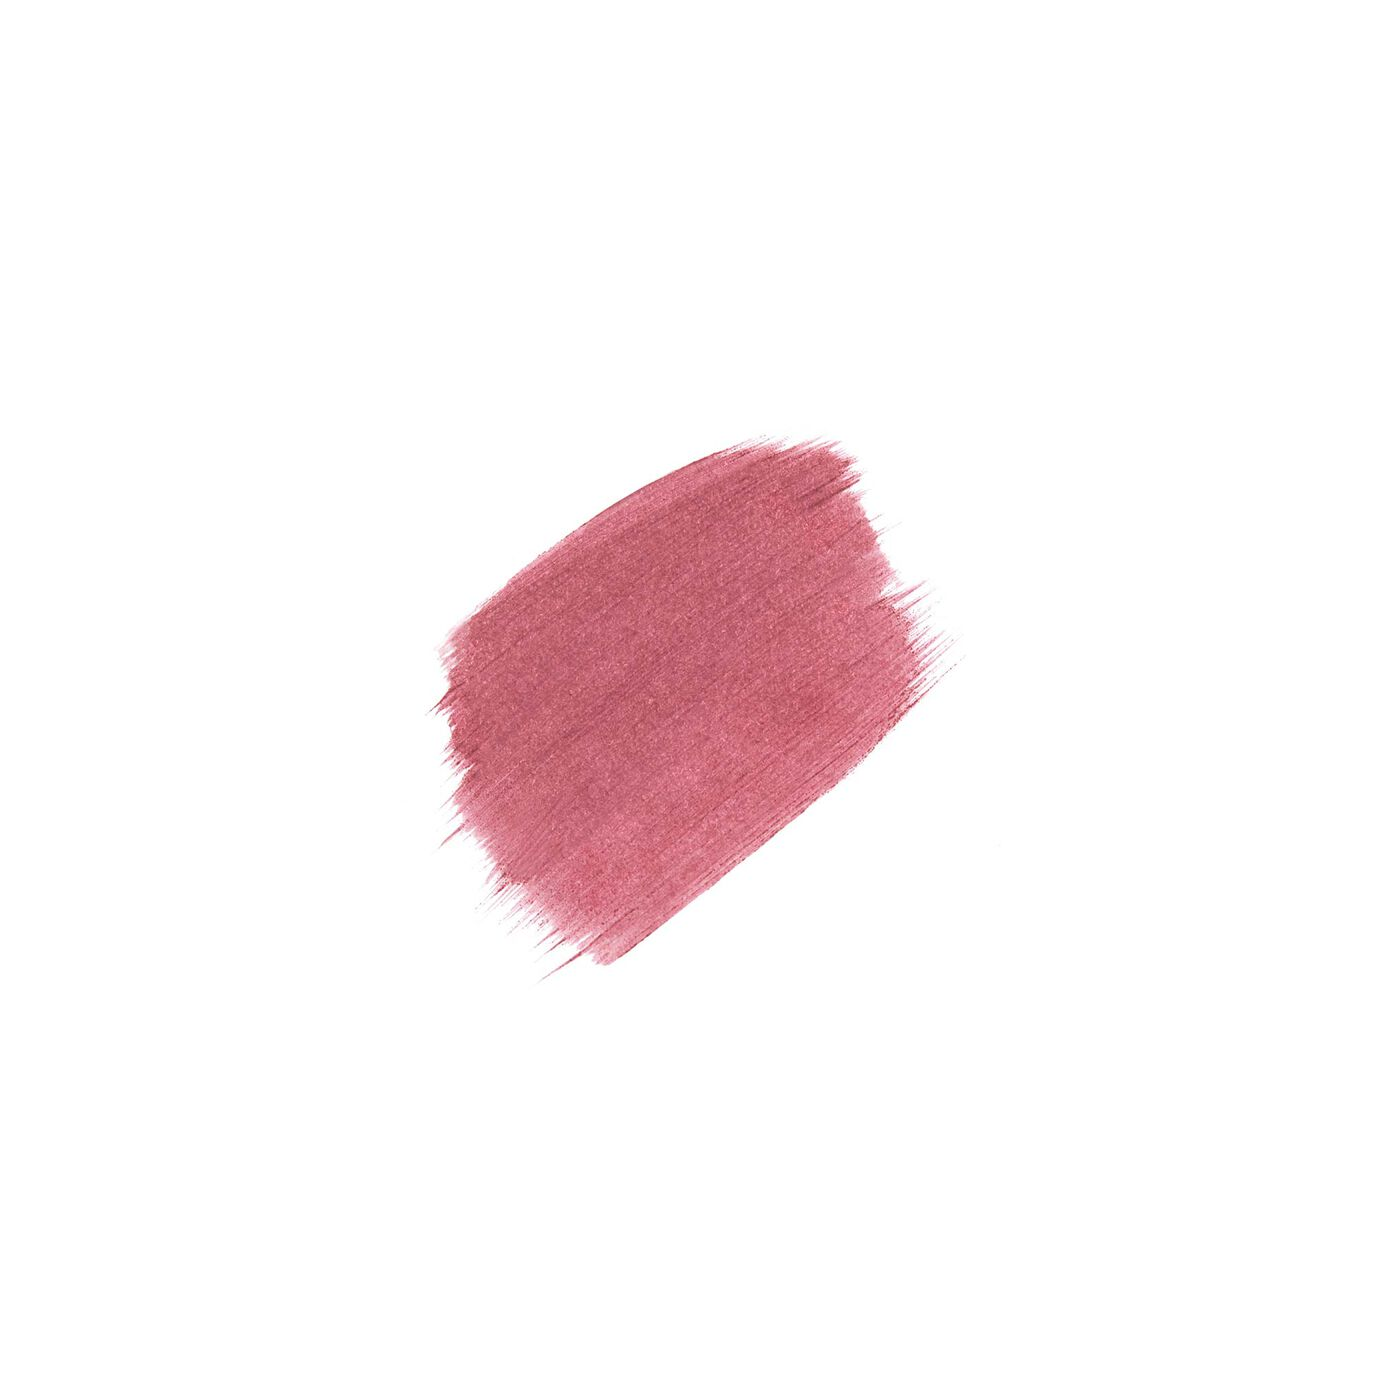 Lip Stain - Dusty Rose